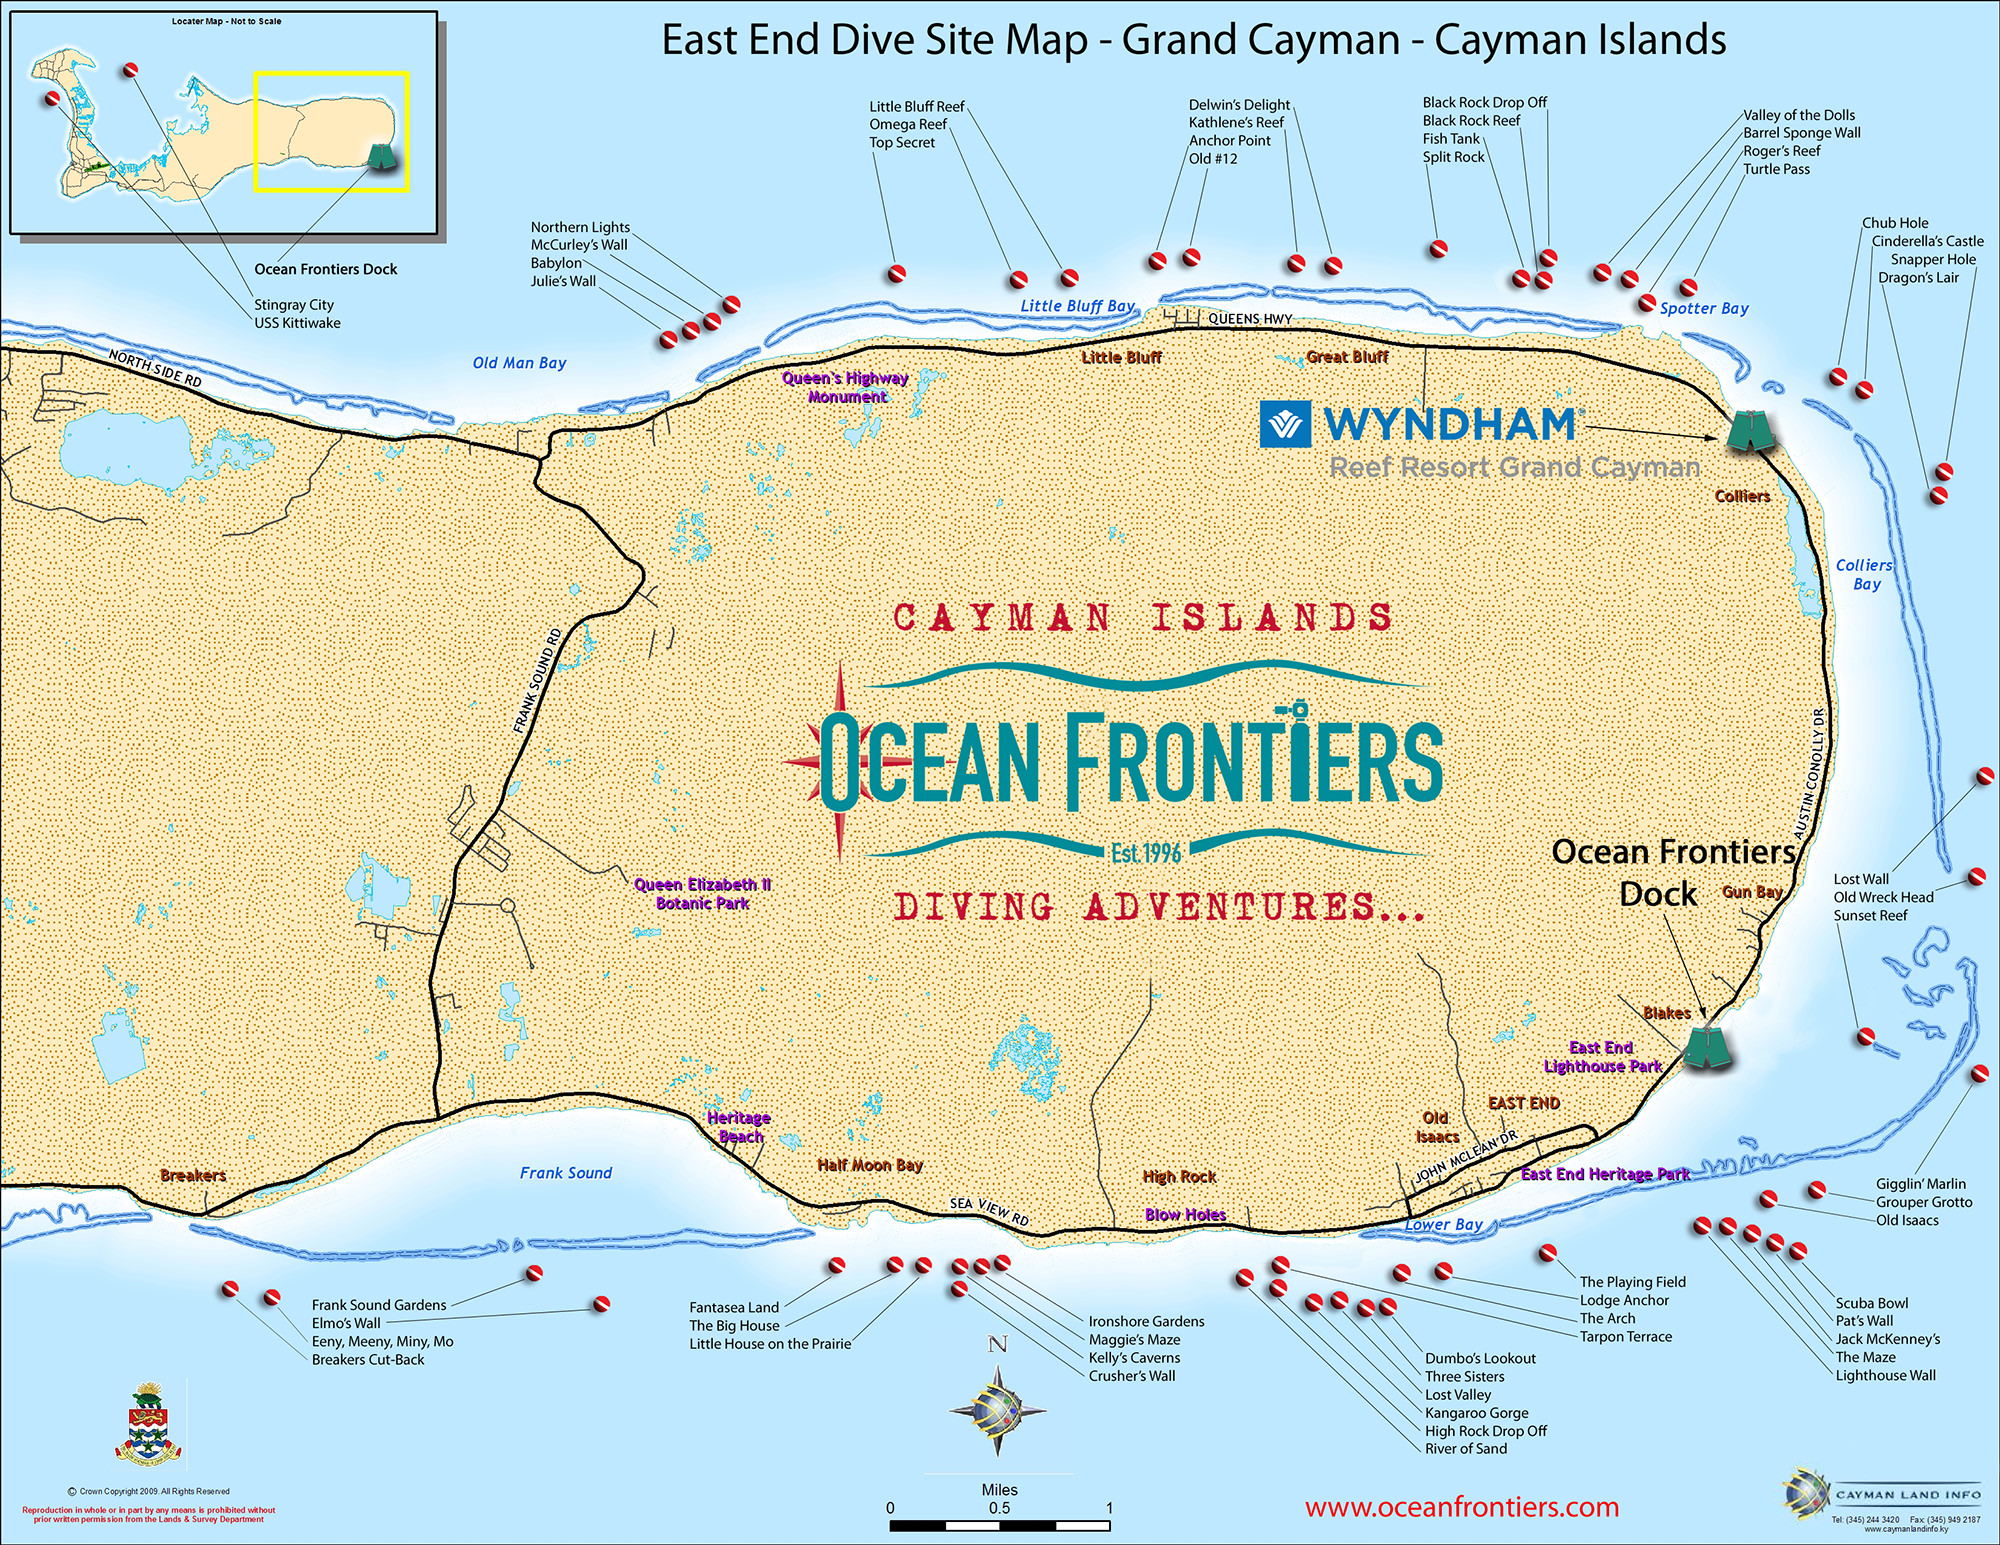 East End Dive Site Map Grand Cayman